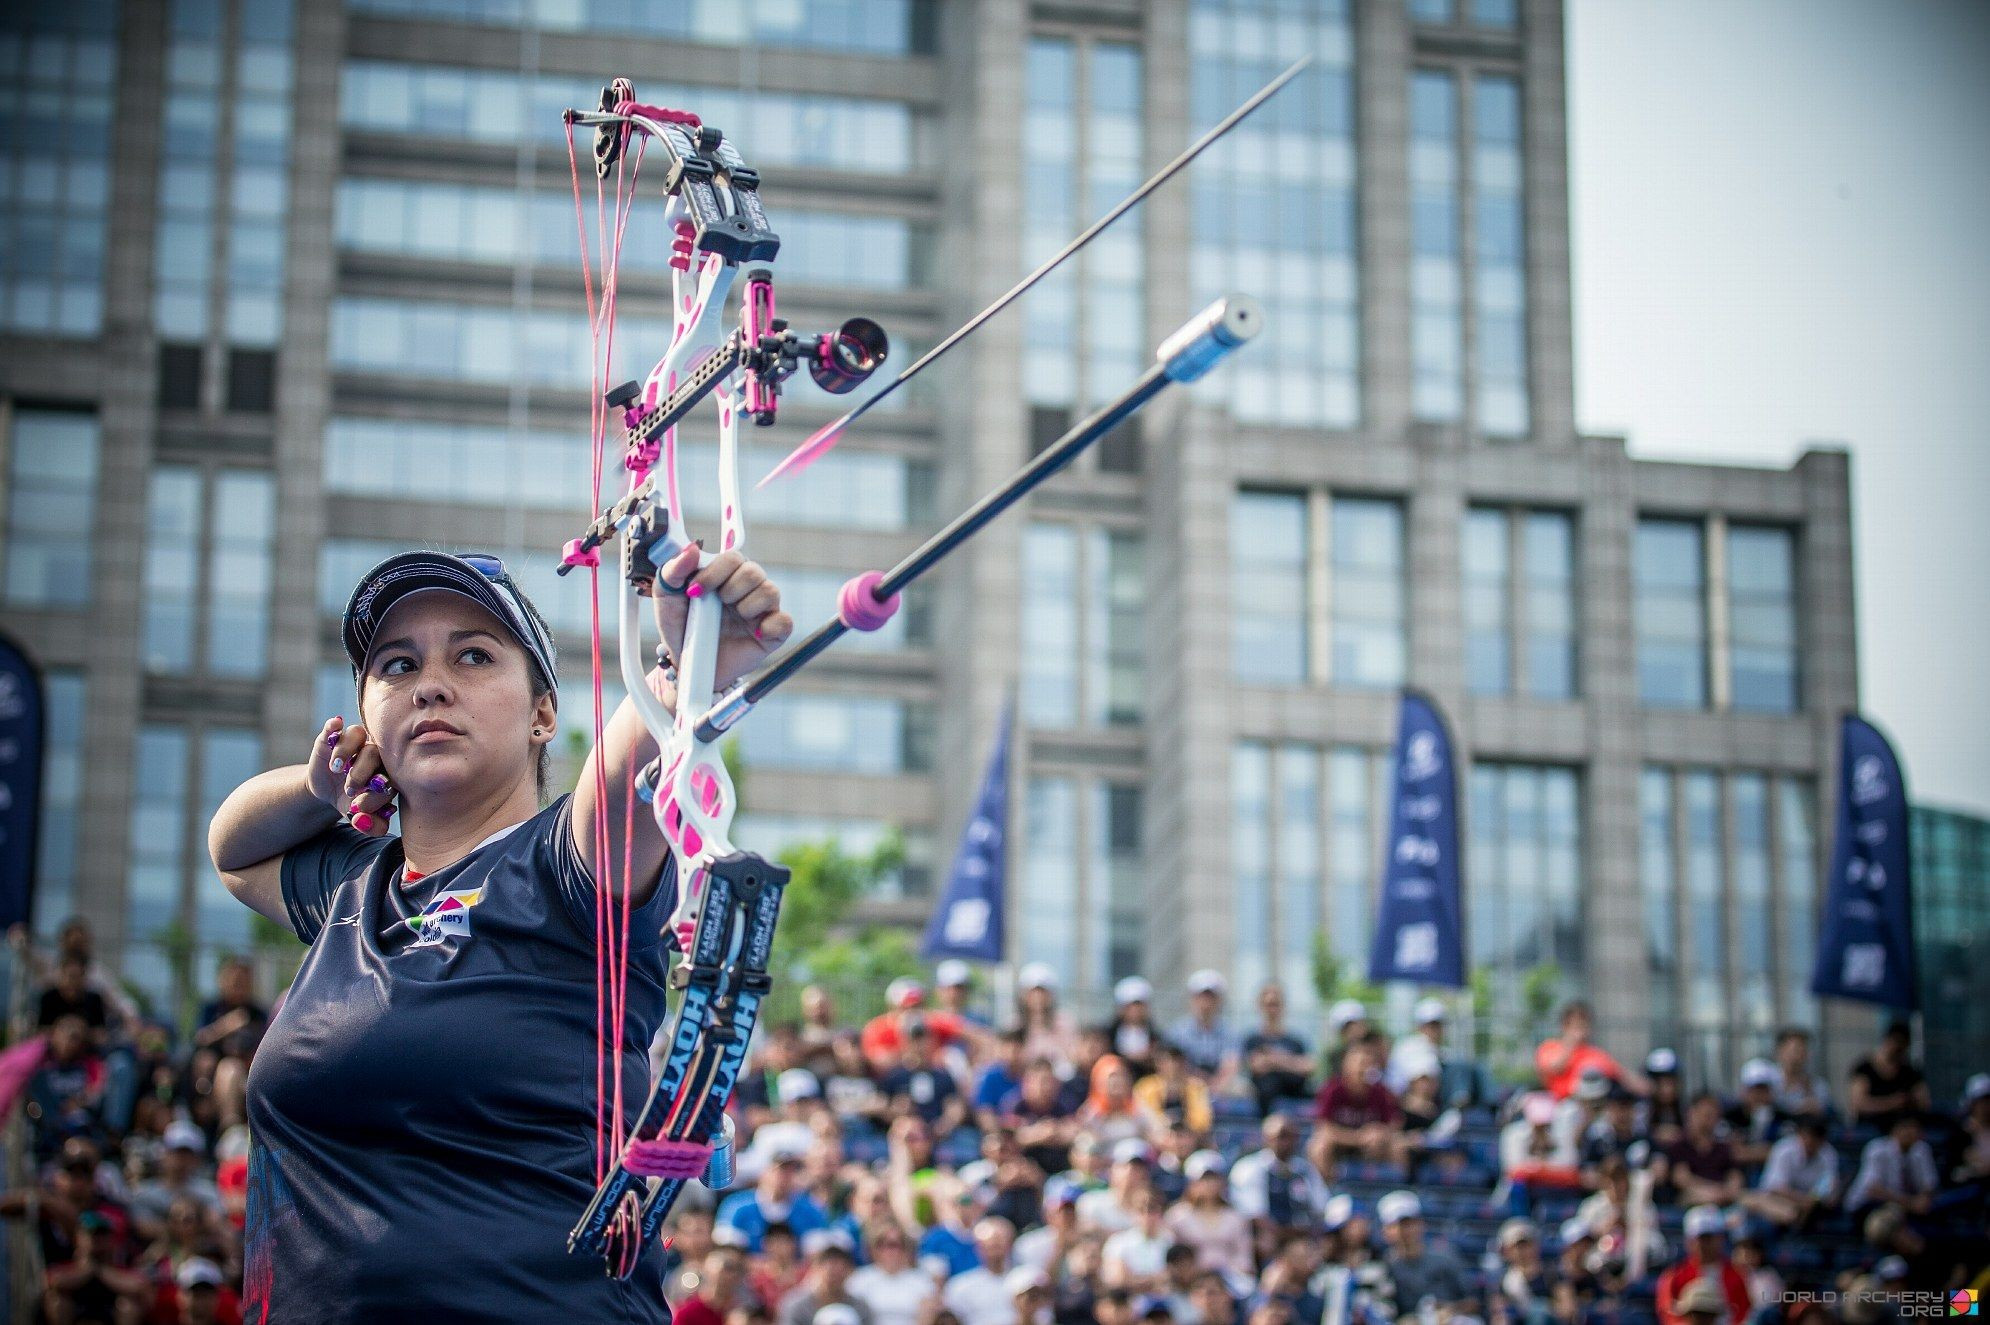 Colombia's Sara López will be bidding for a third women's compound Archery World Cup Final title this weekend with the 2017 edition scheduled to take place in Rome ©World Archery